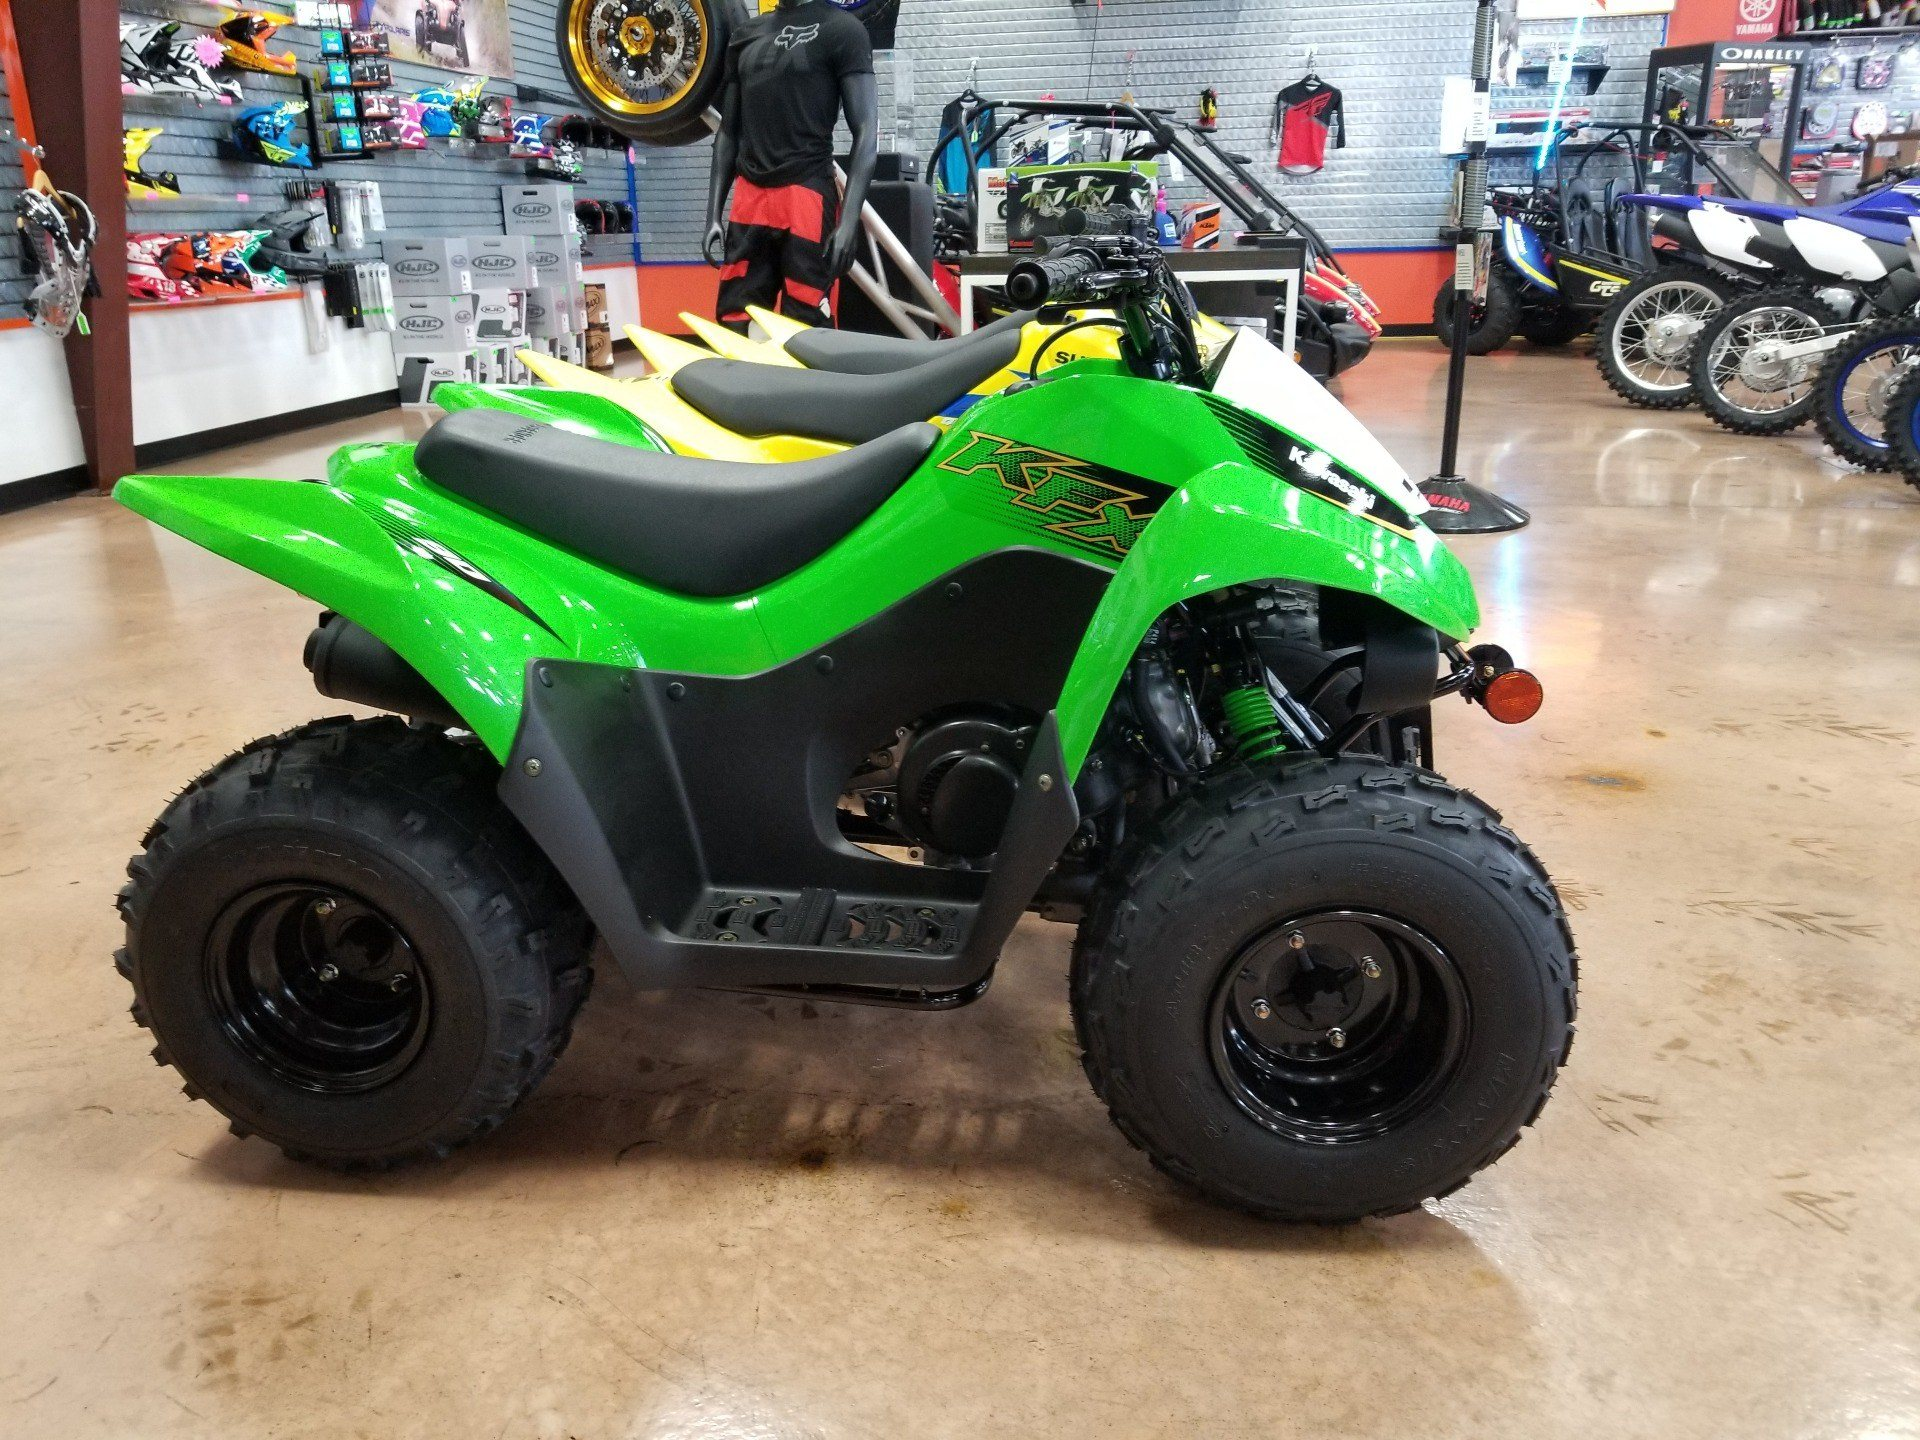 2020 Kawasaki KFX 90 in Evansville, Indiana - Photo 1